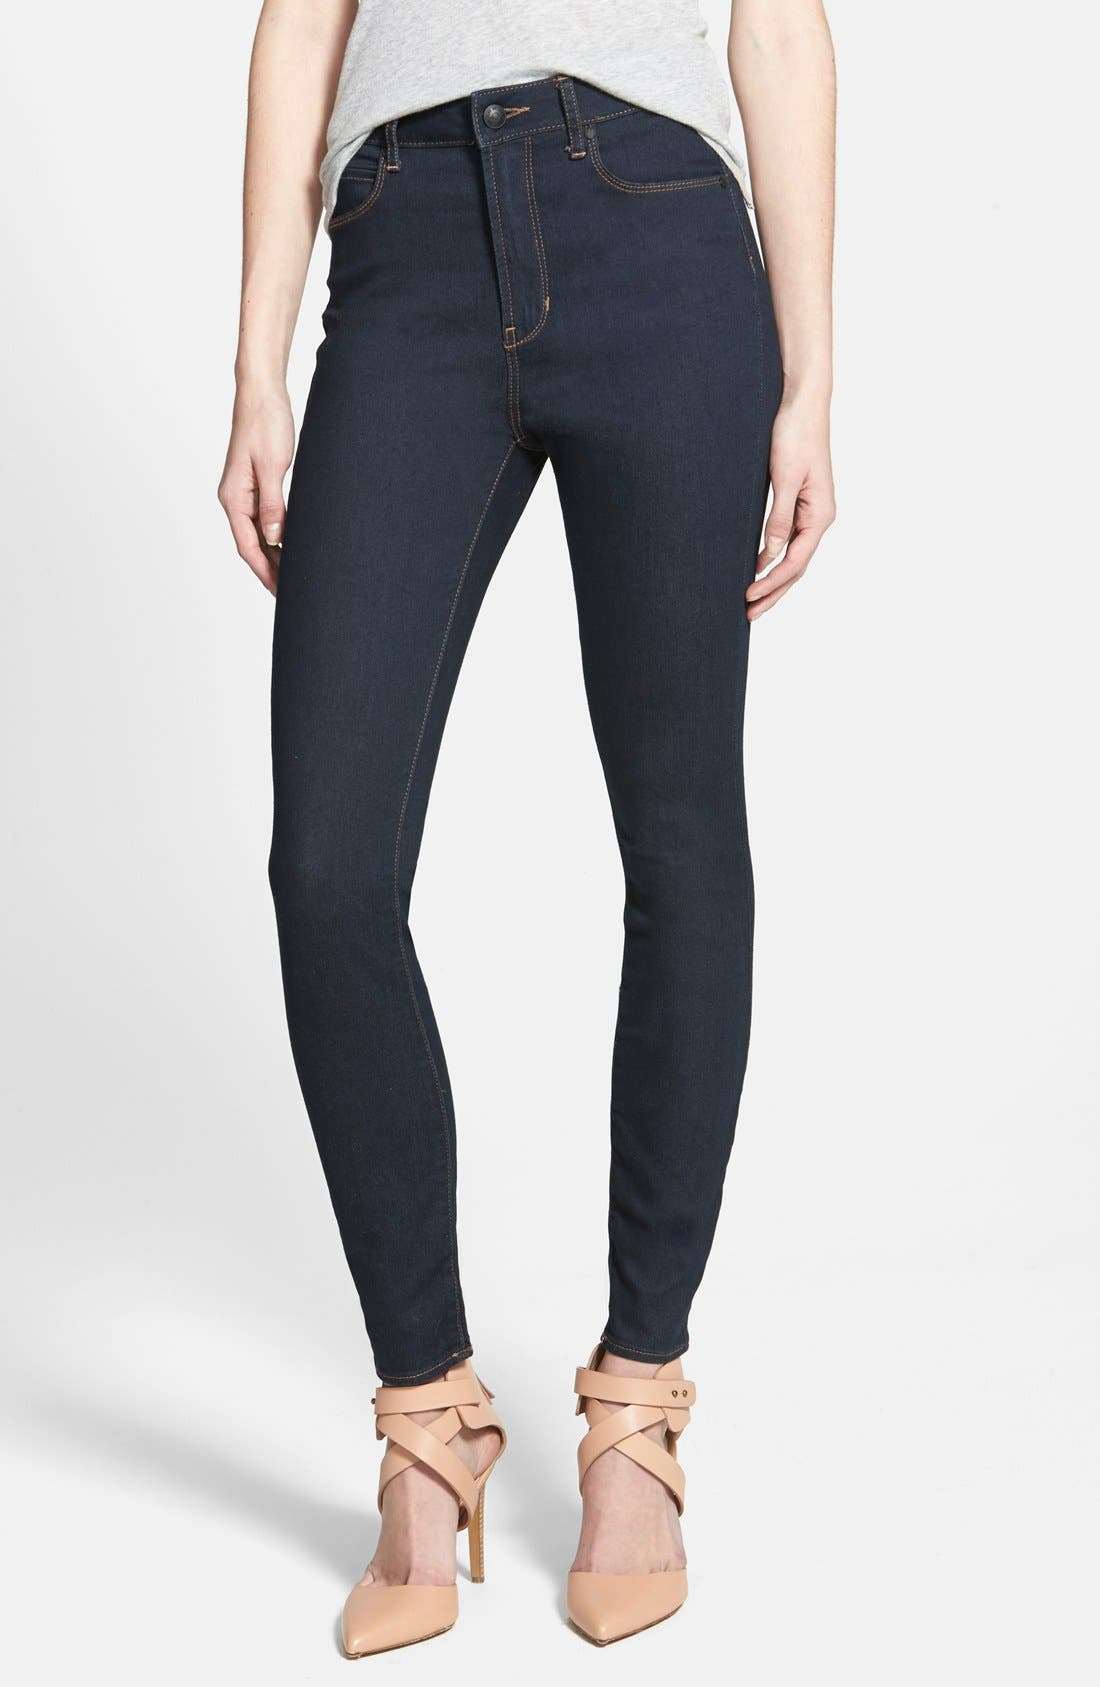 Main Image - Articles of Society 'Halley' High Waist Stretch Skinny Jeans